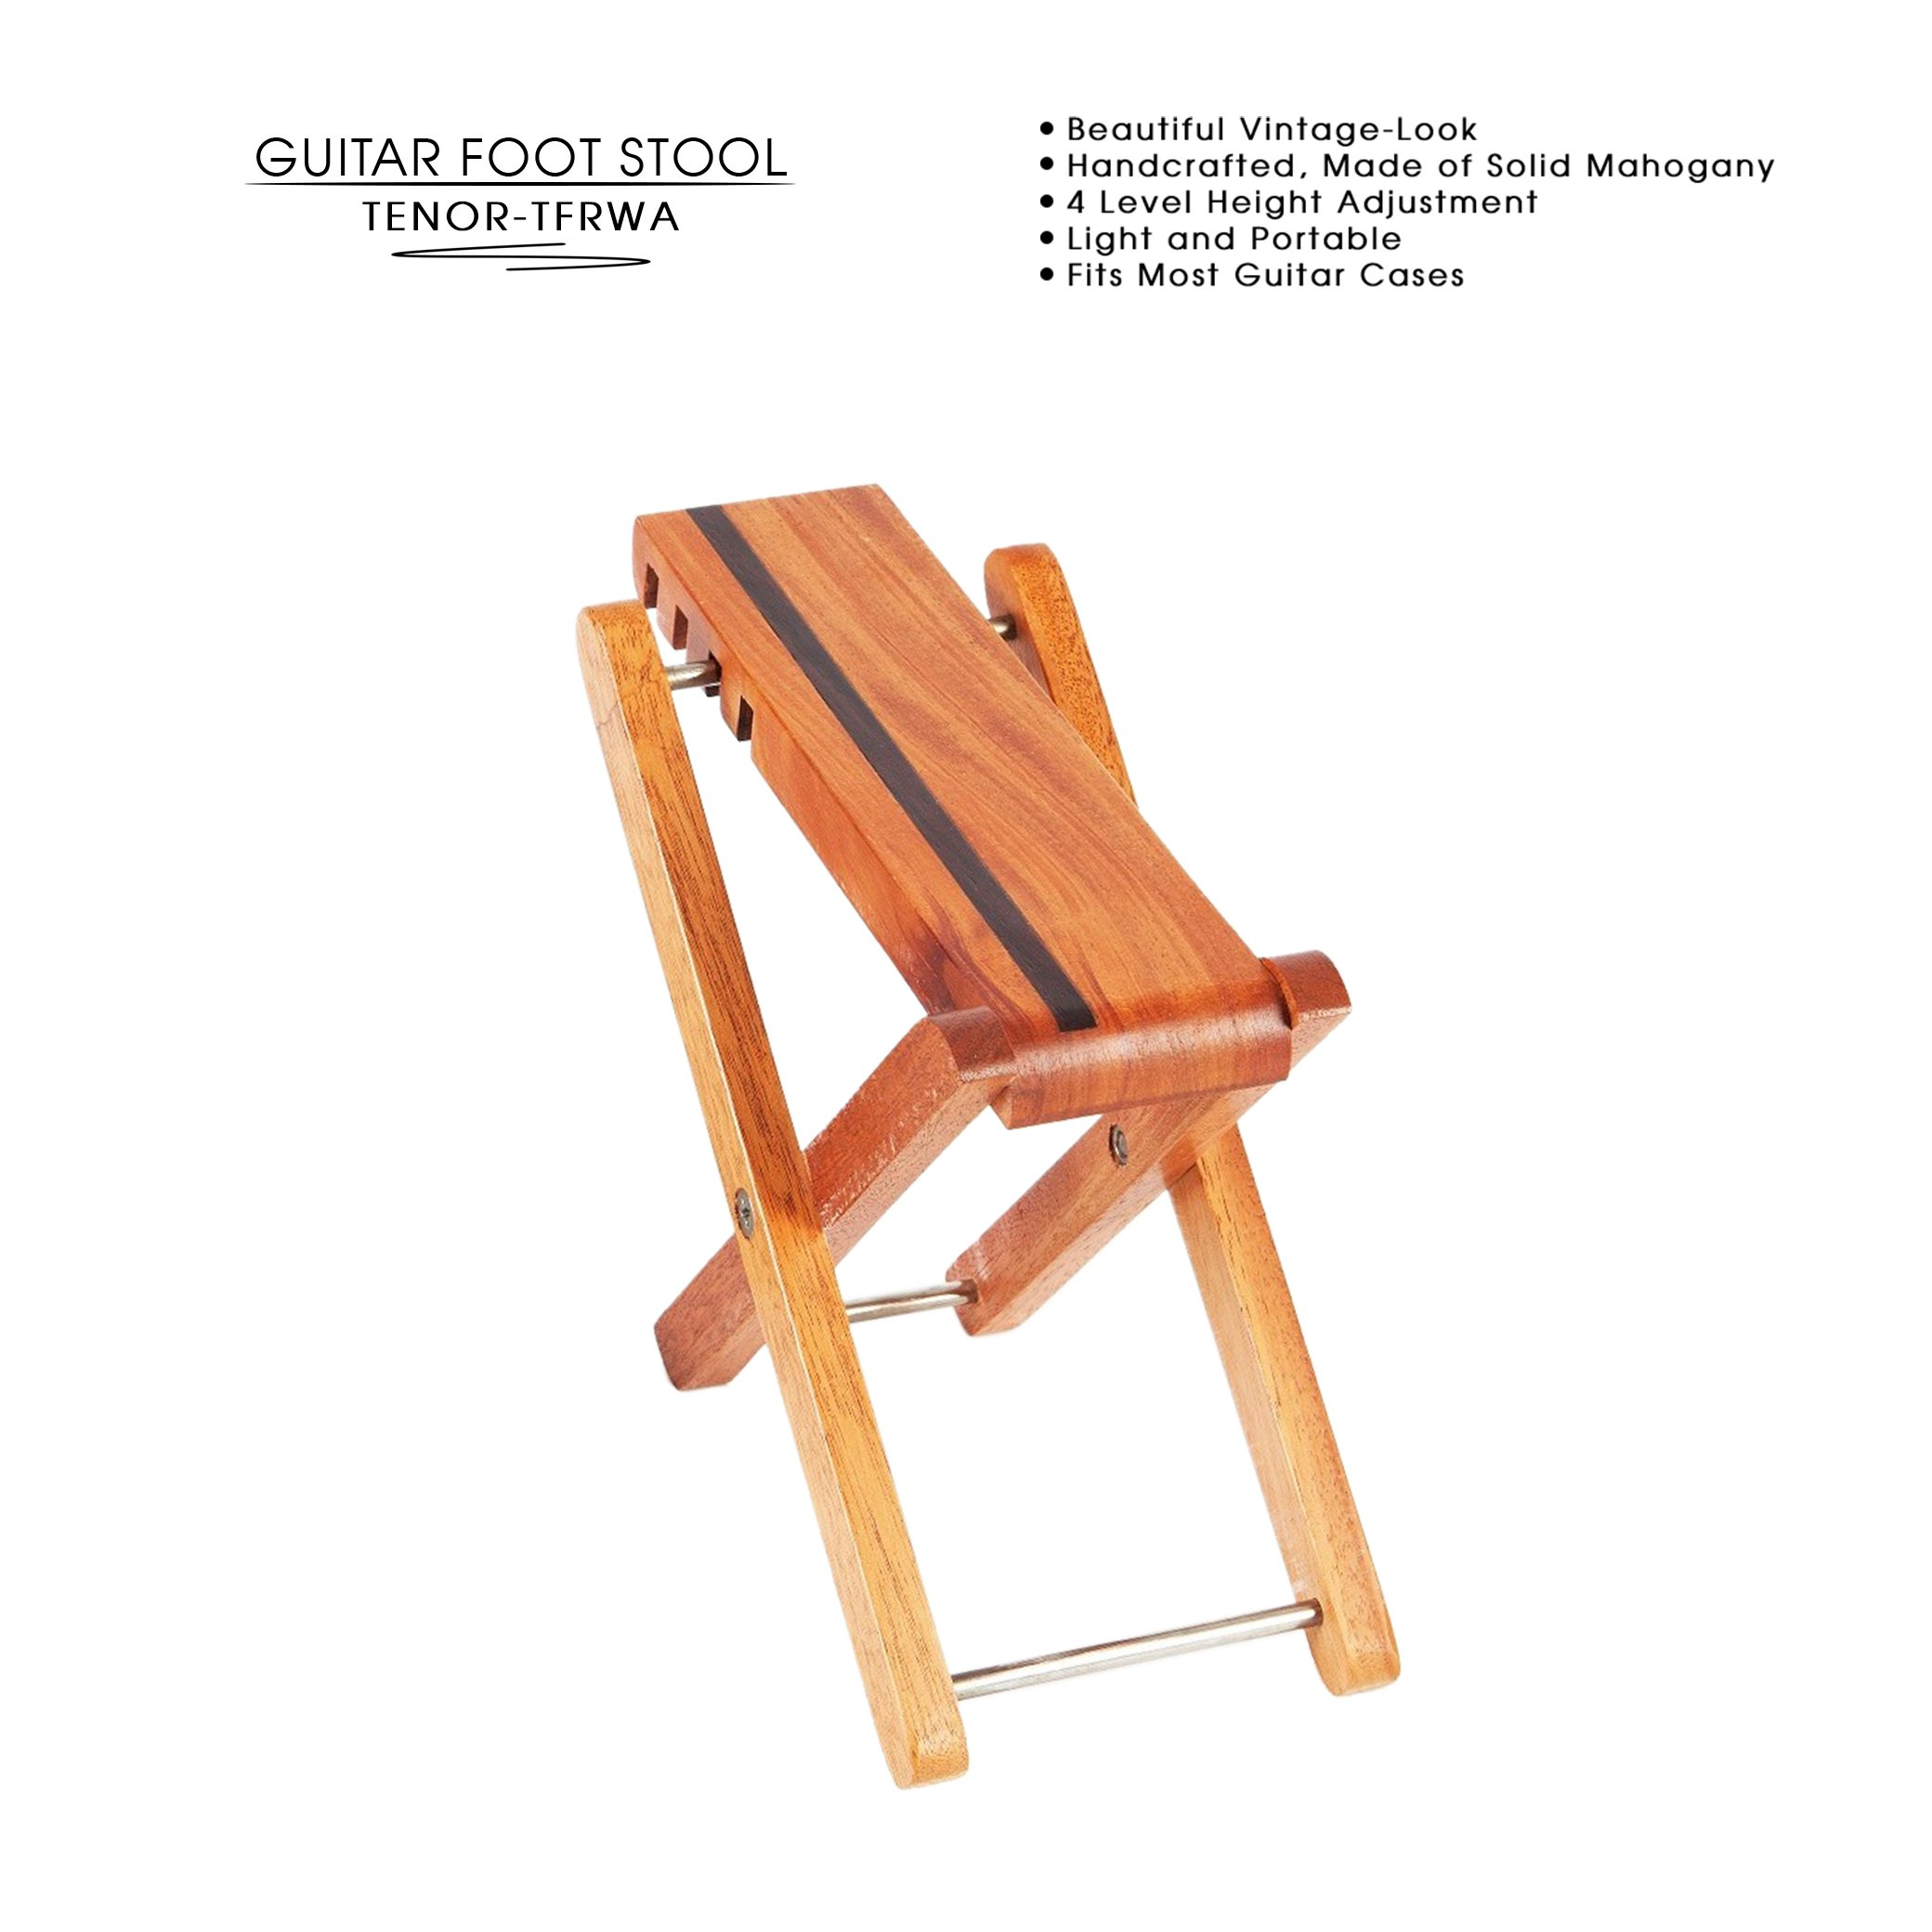 Swell Cheap Wooden Guitar Stands Find Wooden Guitar Stands Deals Ocoug Best Dining Table And Chair Ideas Images Ocougorg